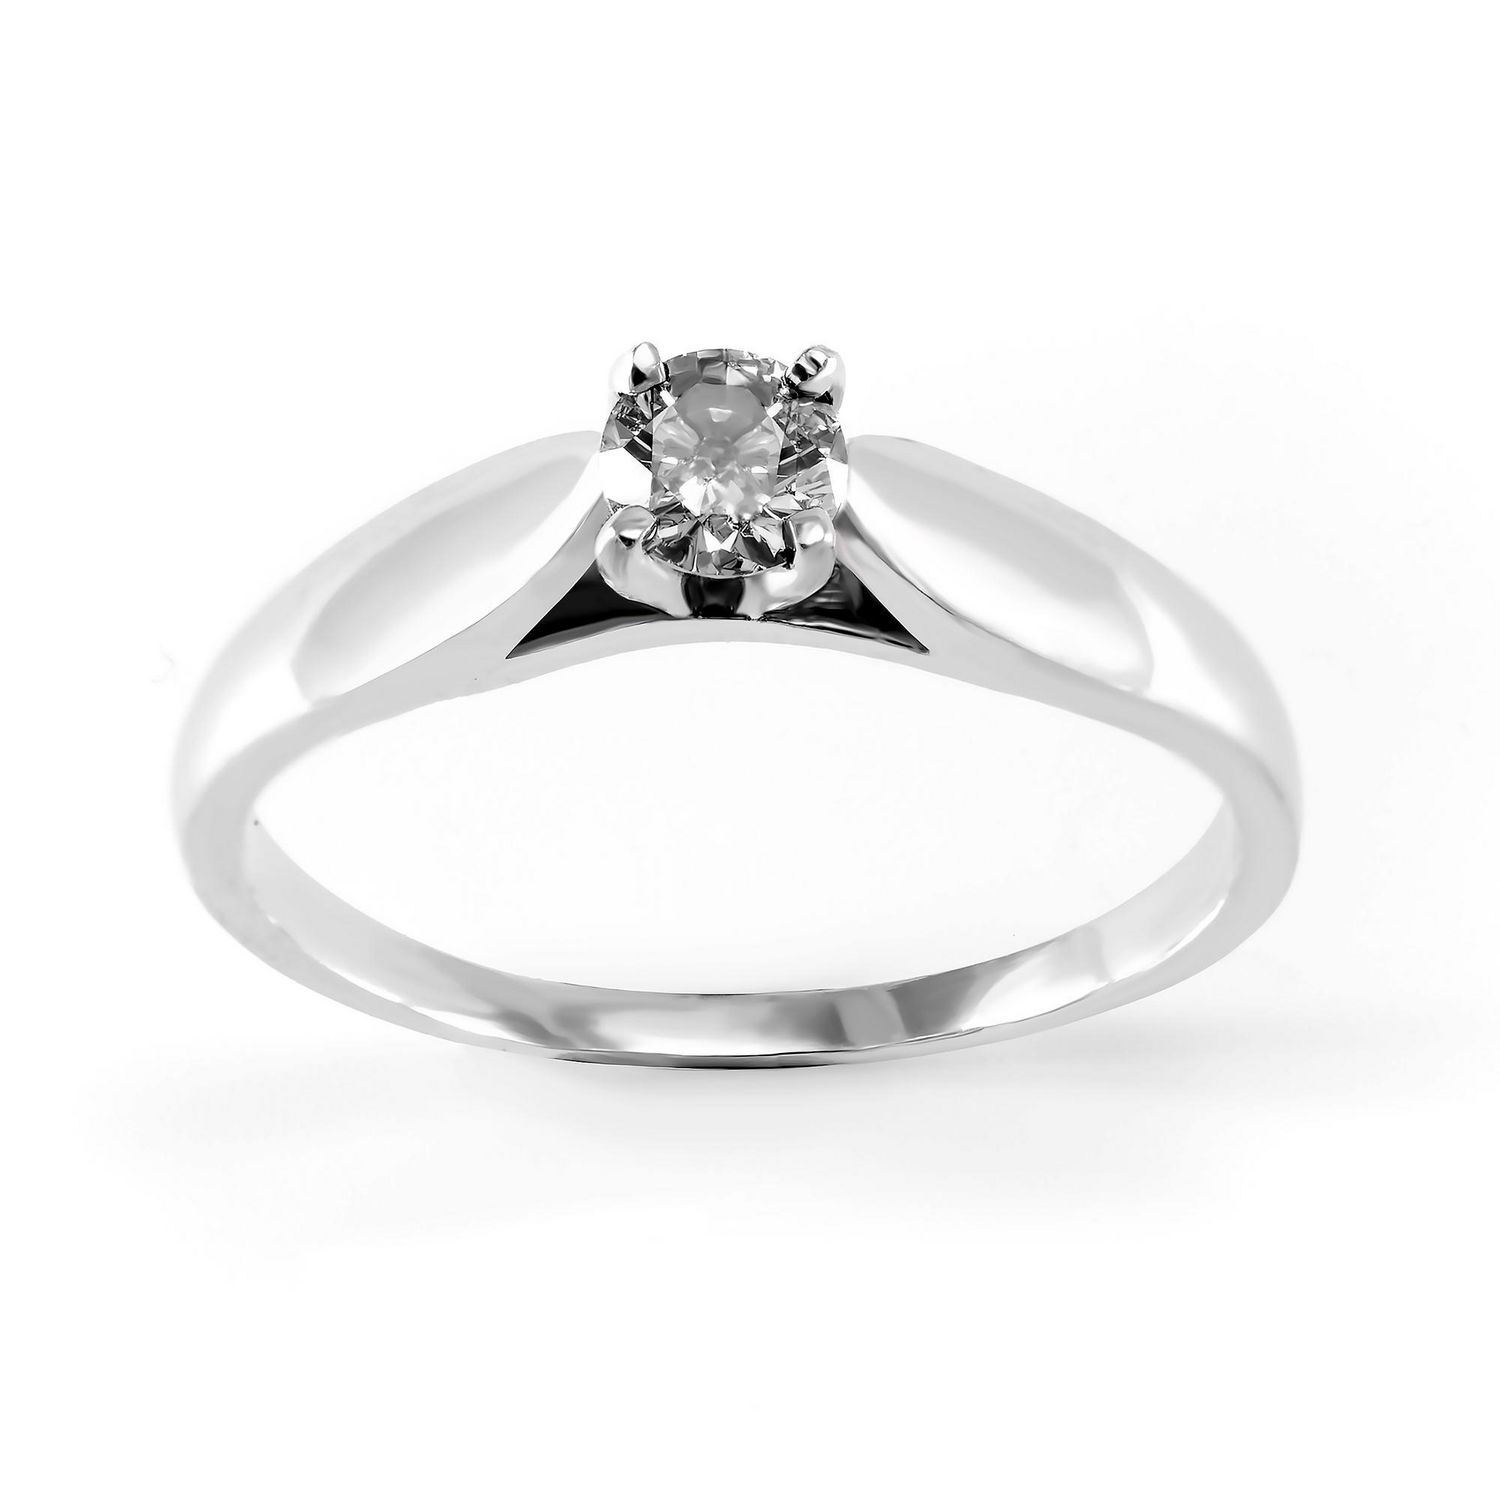 0.15 Ct – Round Brilliant Diamond Solitaire Ring In Sterling Silver Intended For Brilliant Love Diamond Engagement Rings (Gallery 15 of 25)